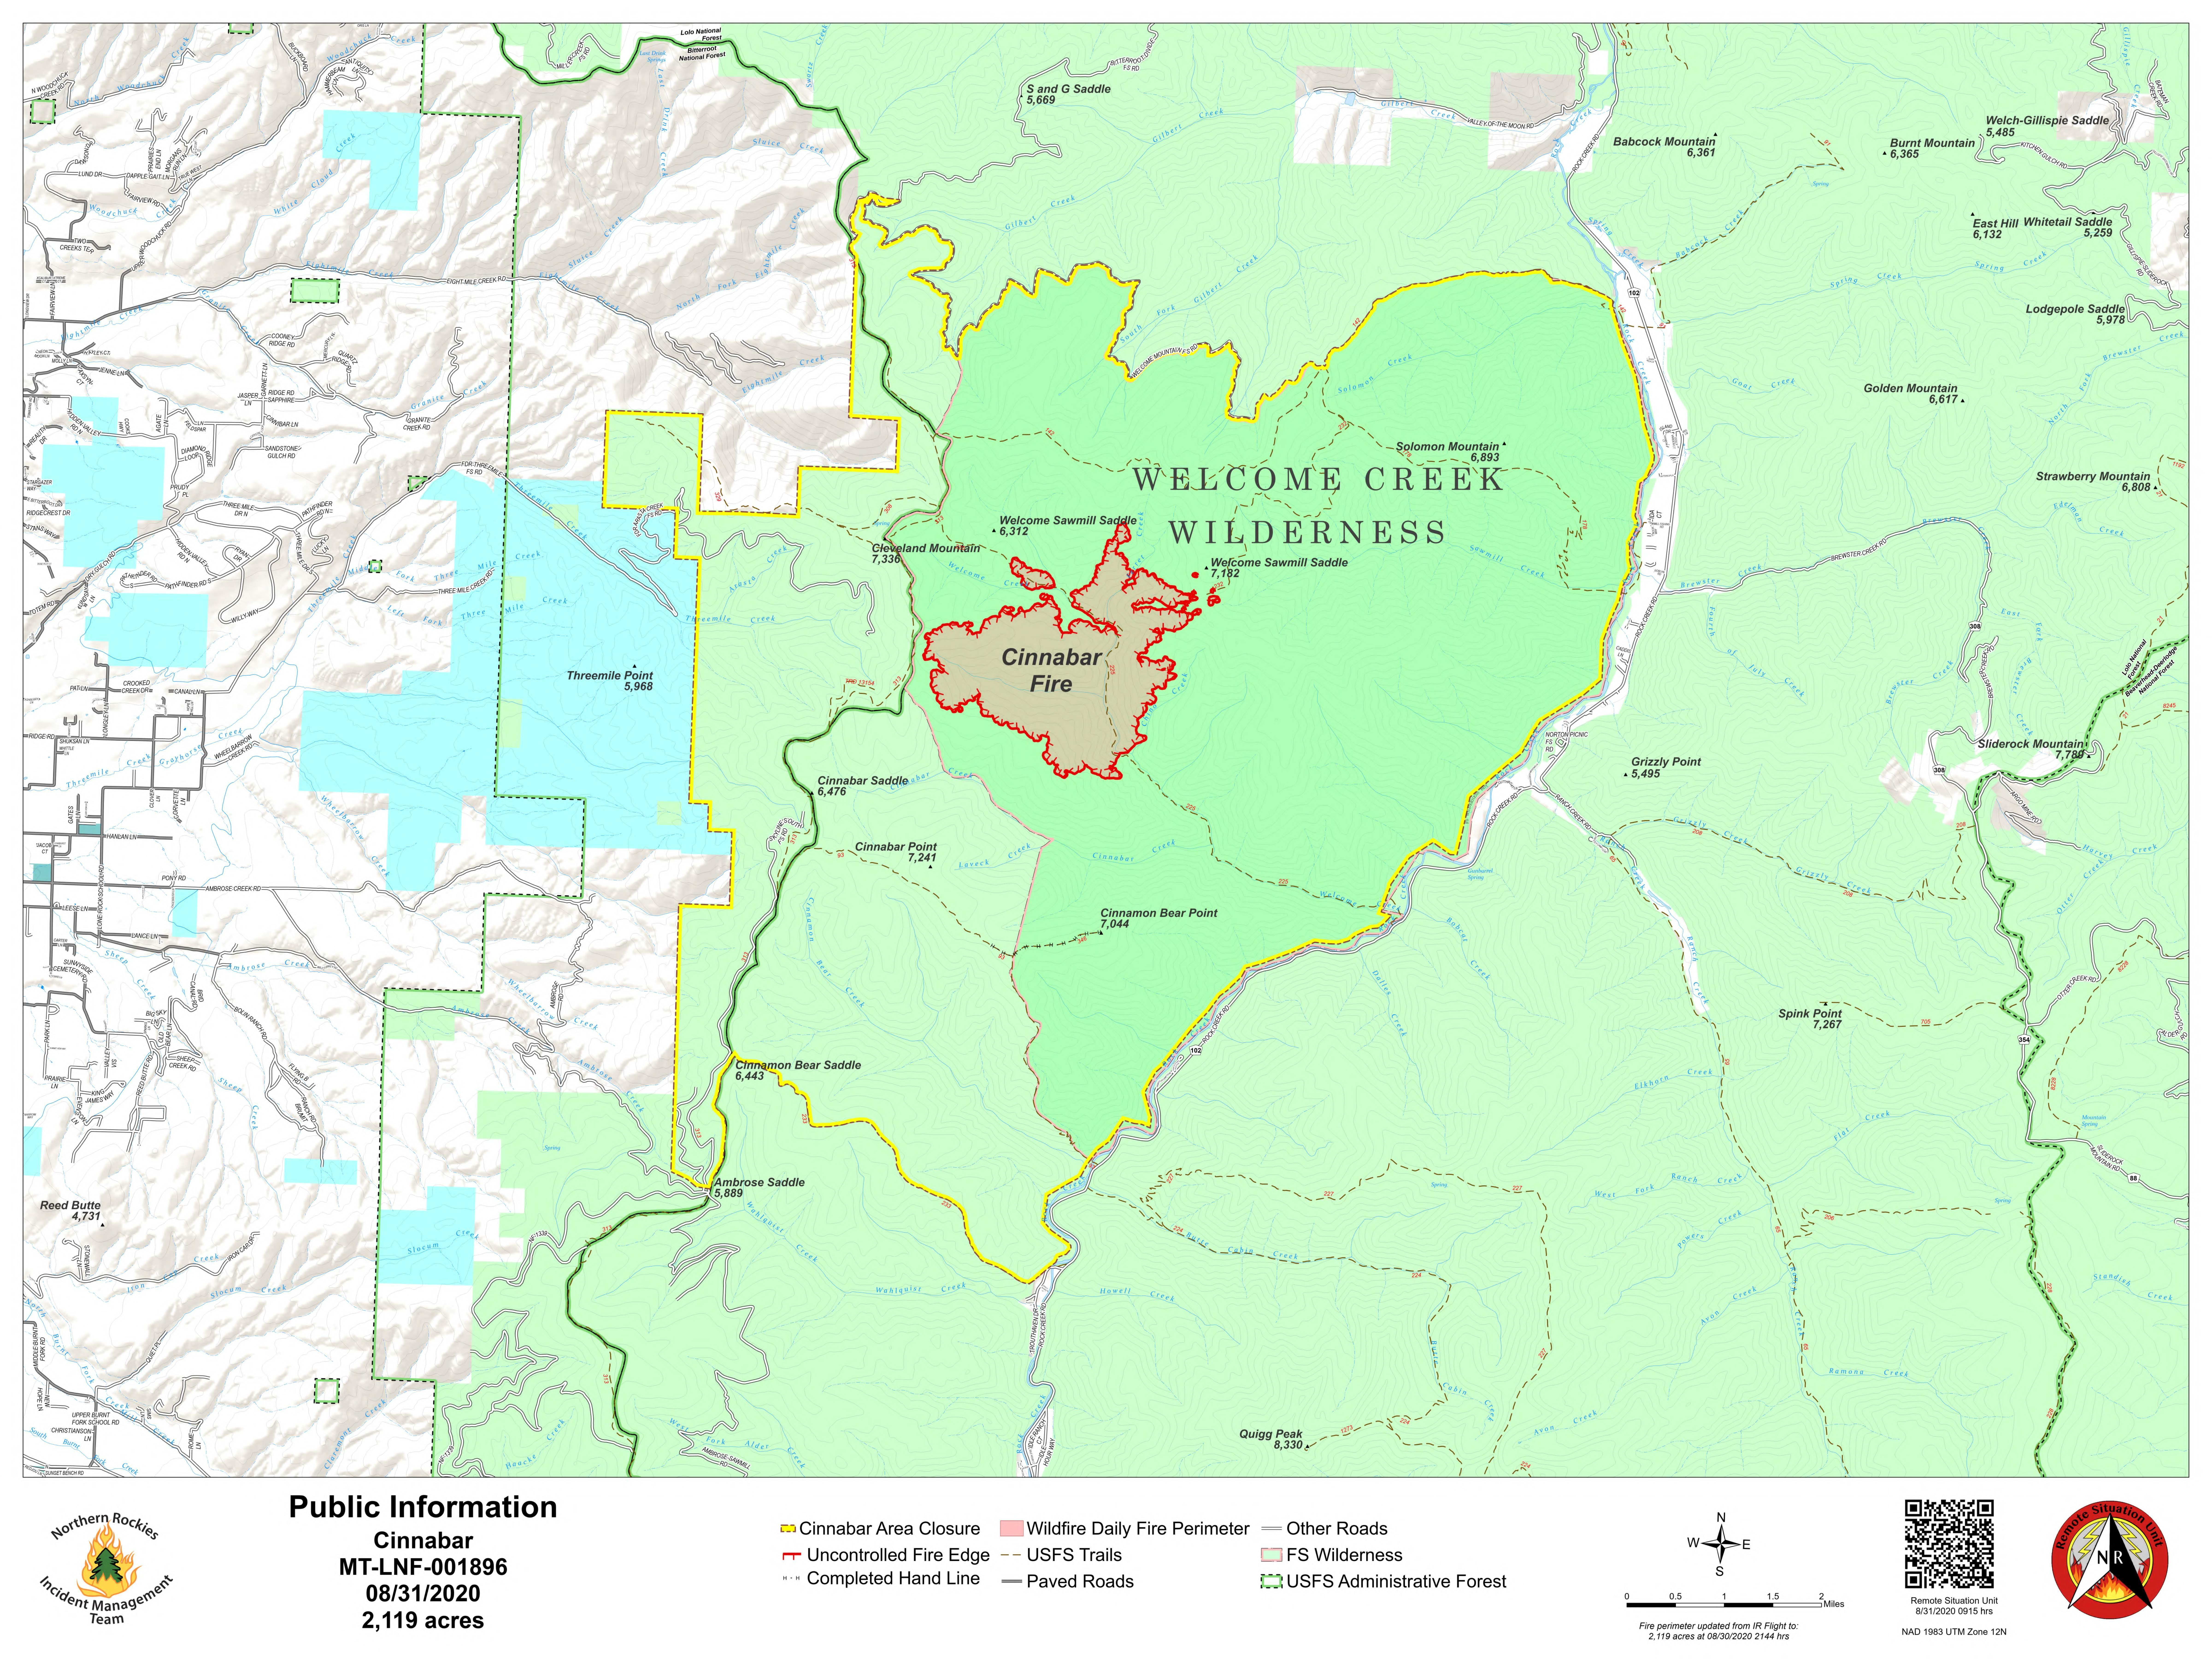 Fire Perimeter for Aug 31, 2020